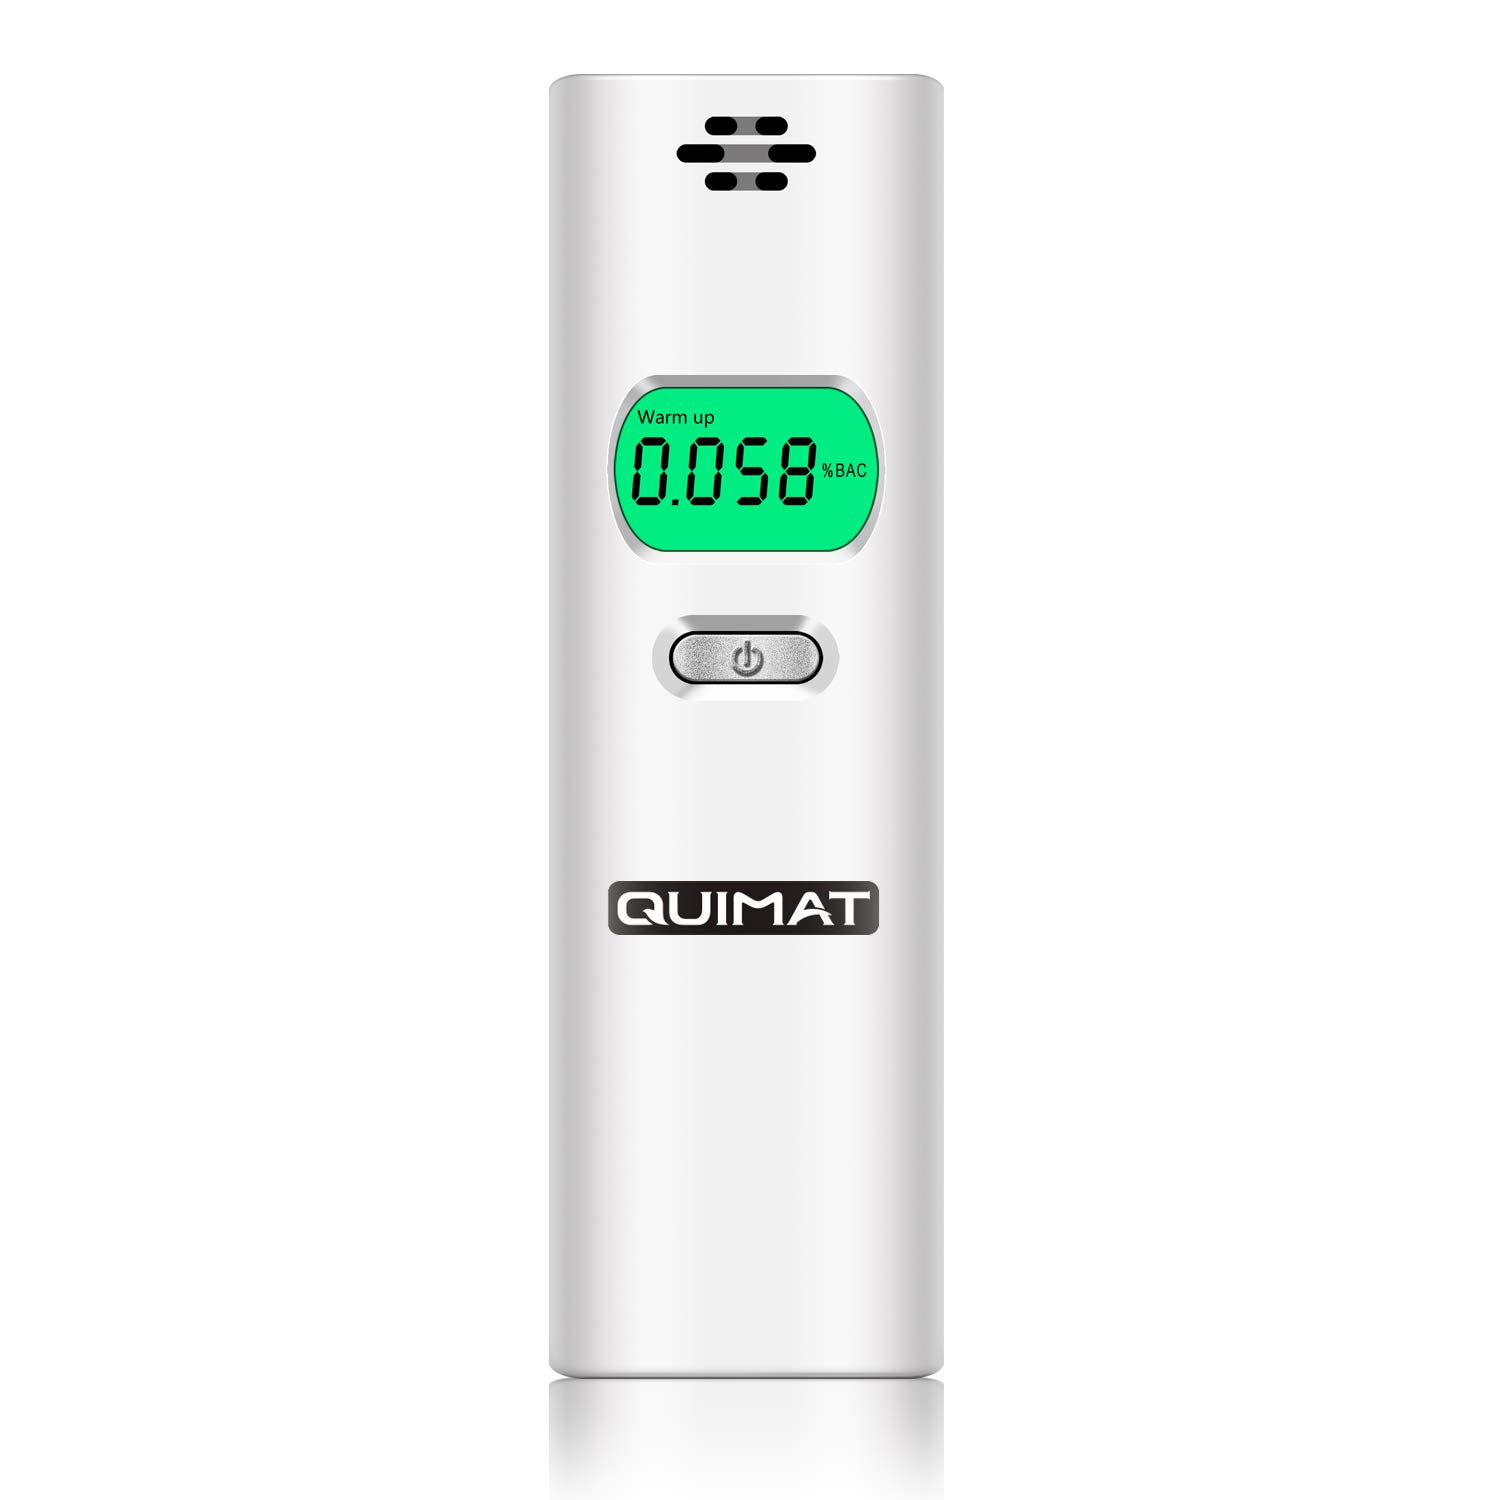 Quimat Breathalyzer, Portable Breath Alcohol Tester, Digital Battery Power Alcohol Detector with LCD Display for Personal & Professional Use